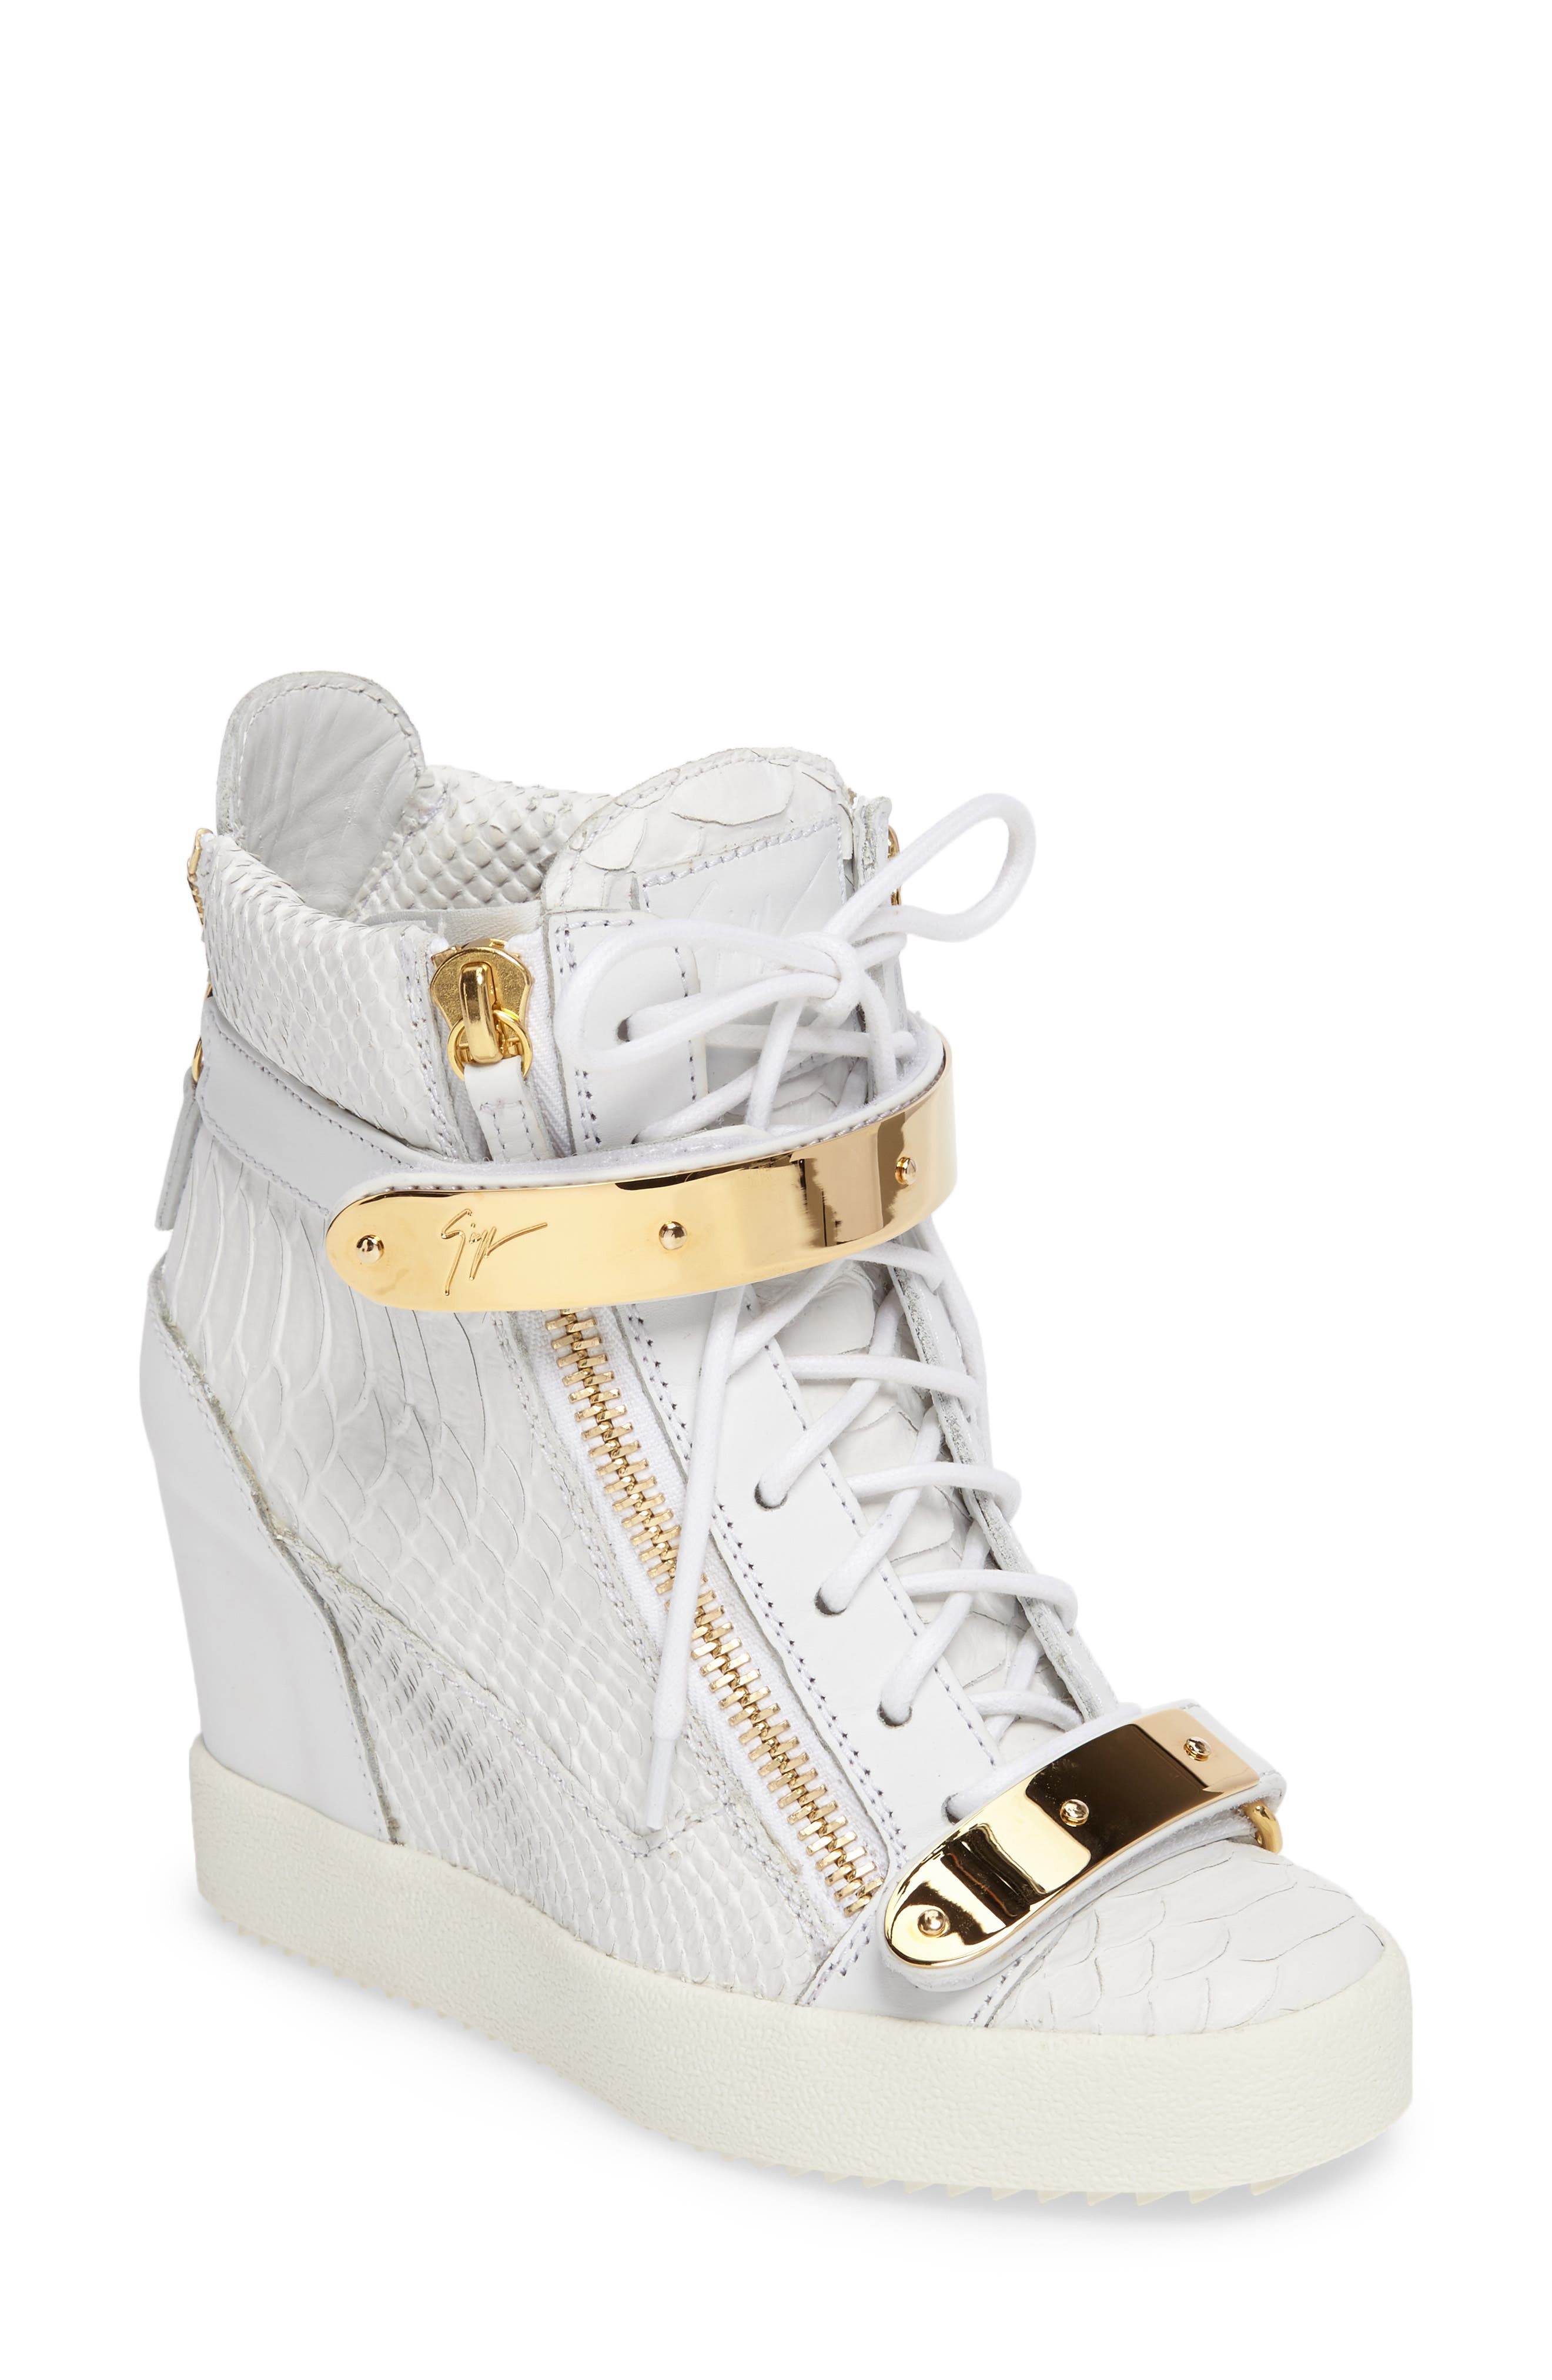 Wedge Sneaker,                         Main,                         color, White